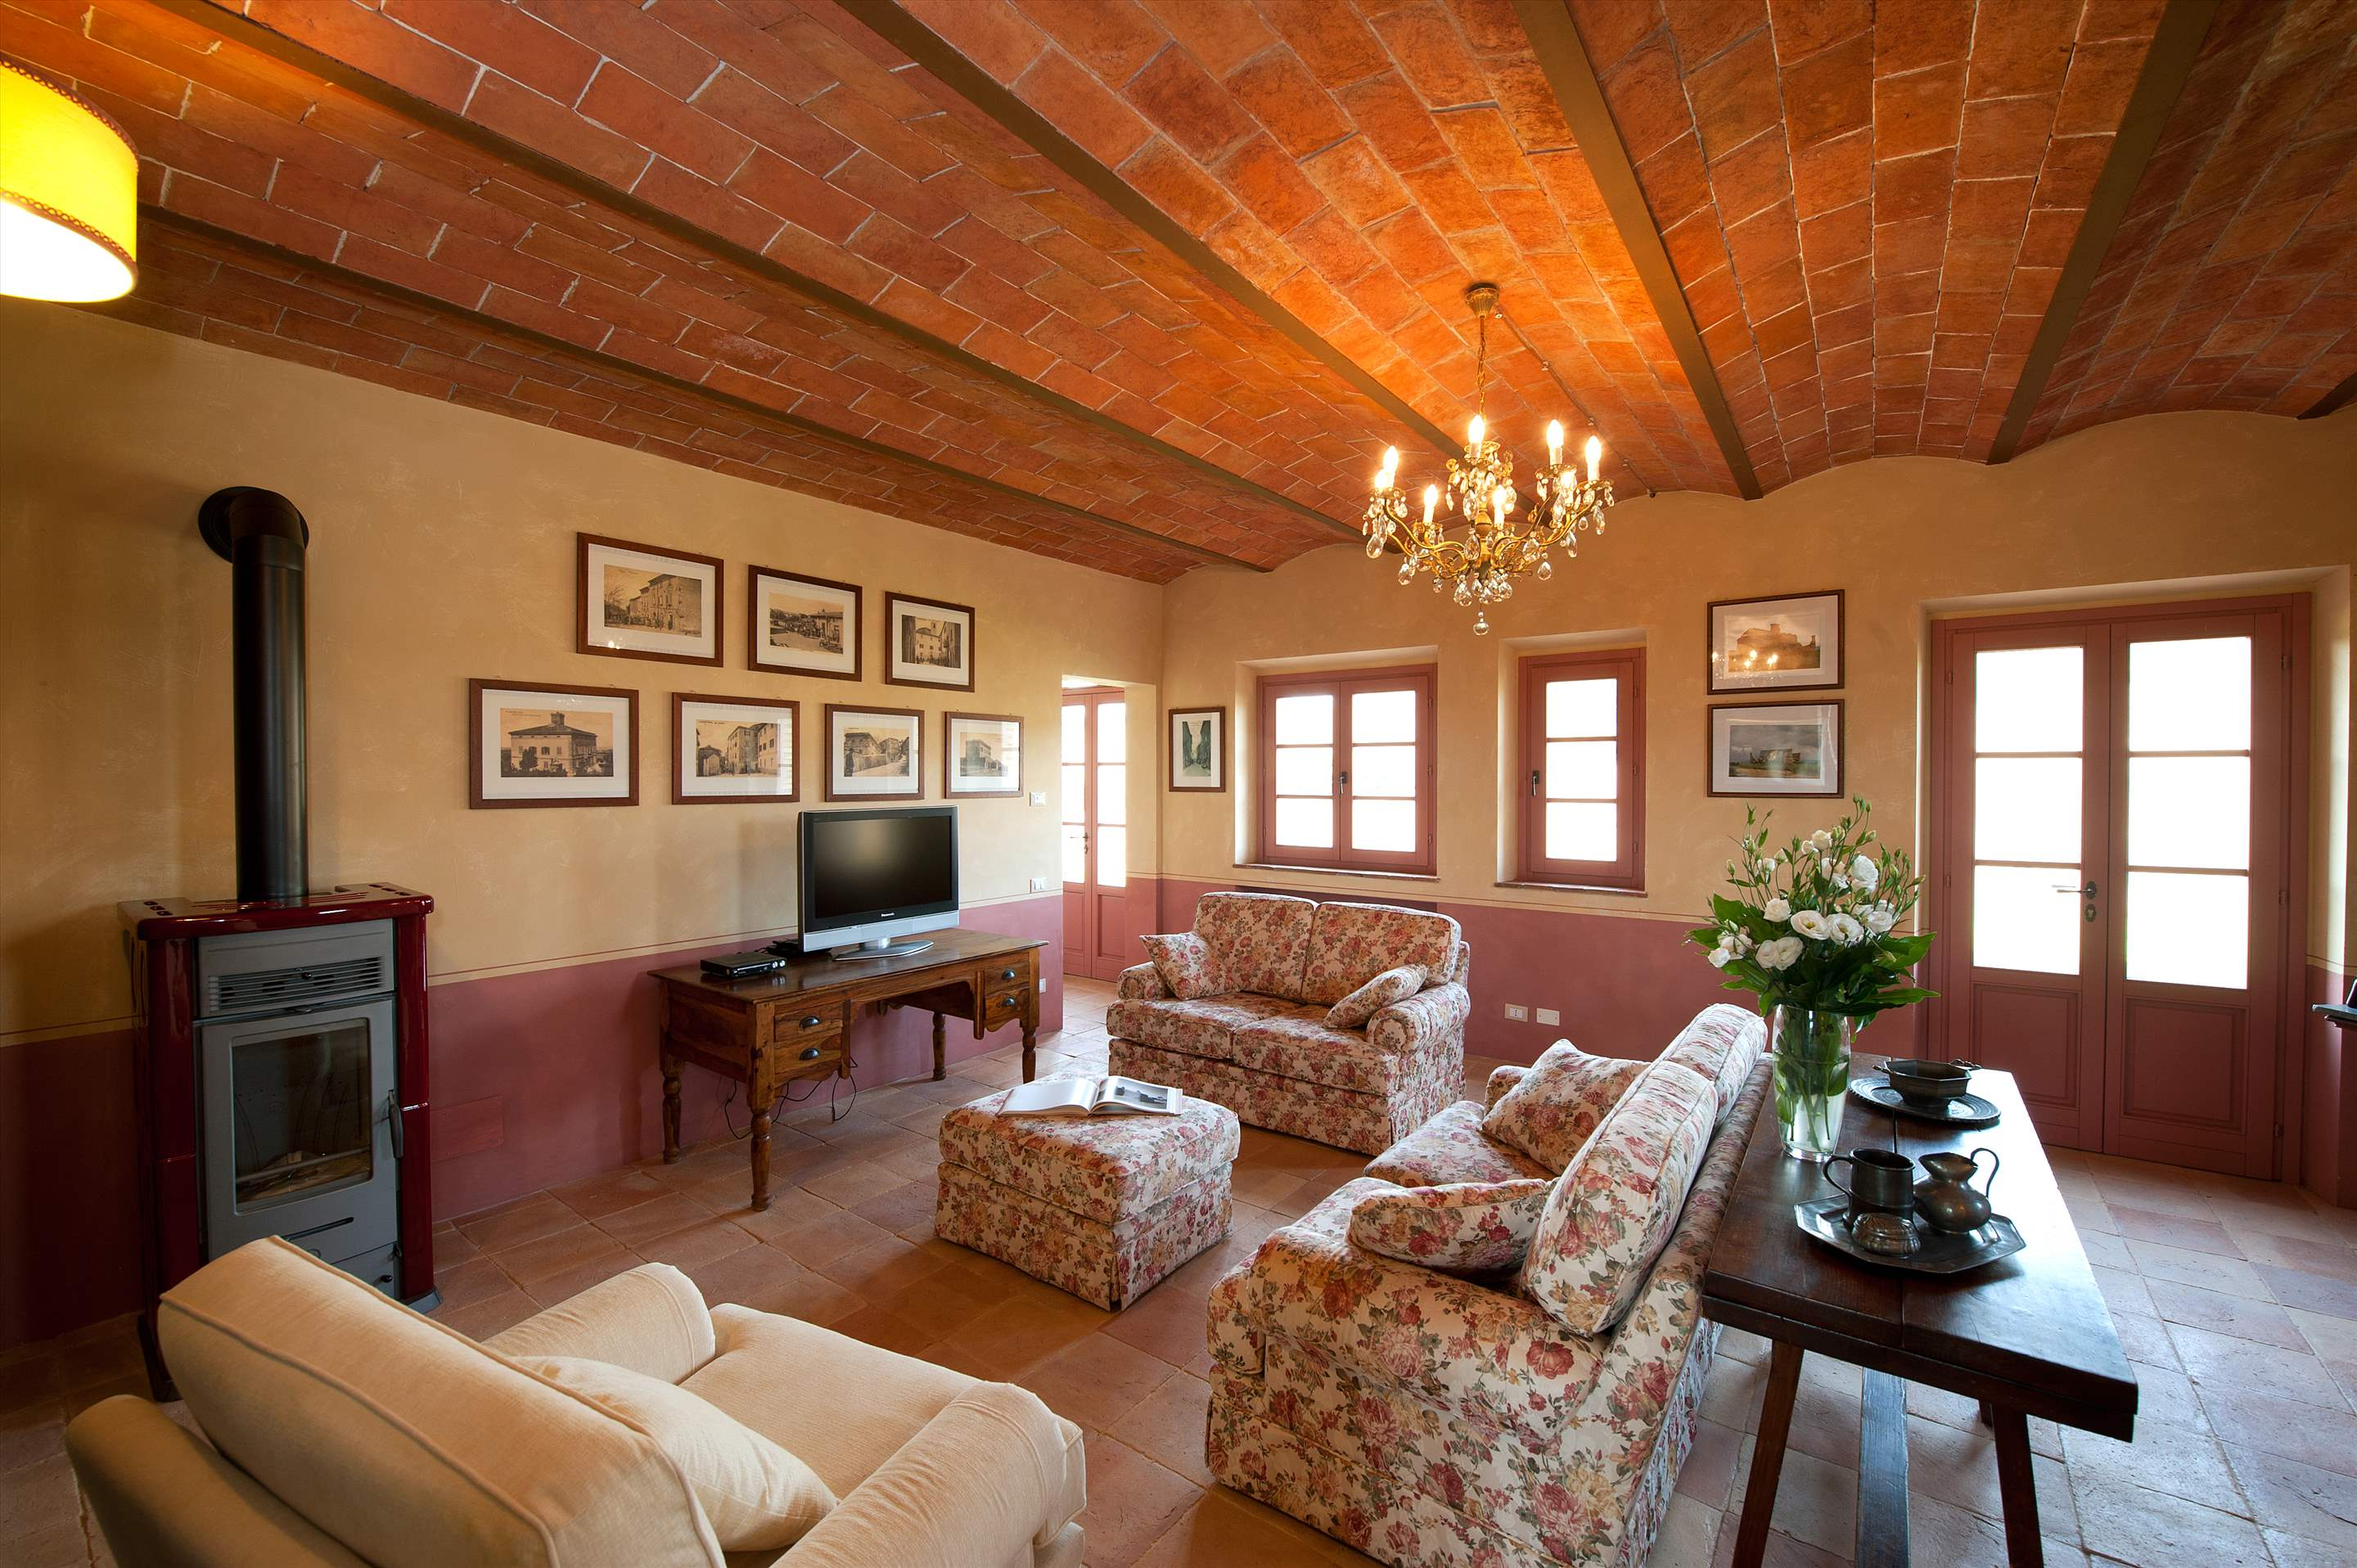 Podere I Gotti, 5 bedroom villa in Tuscany Coast, Tuscany Photo #7